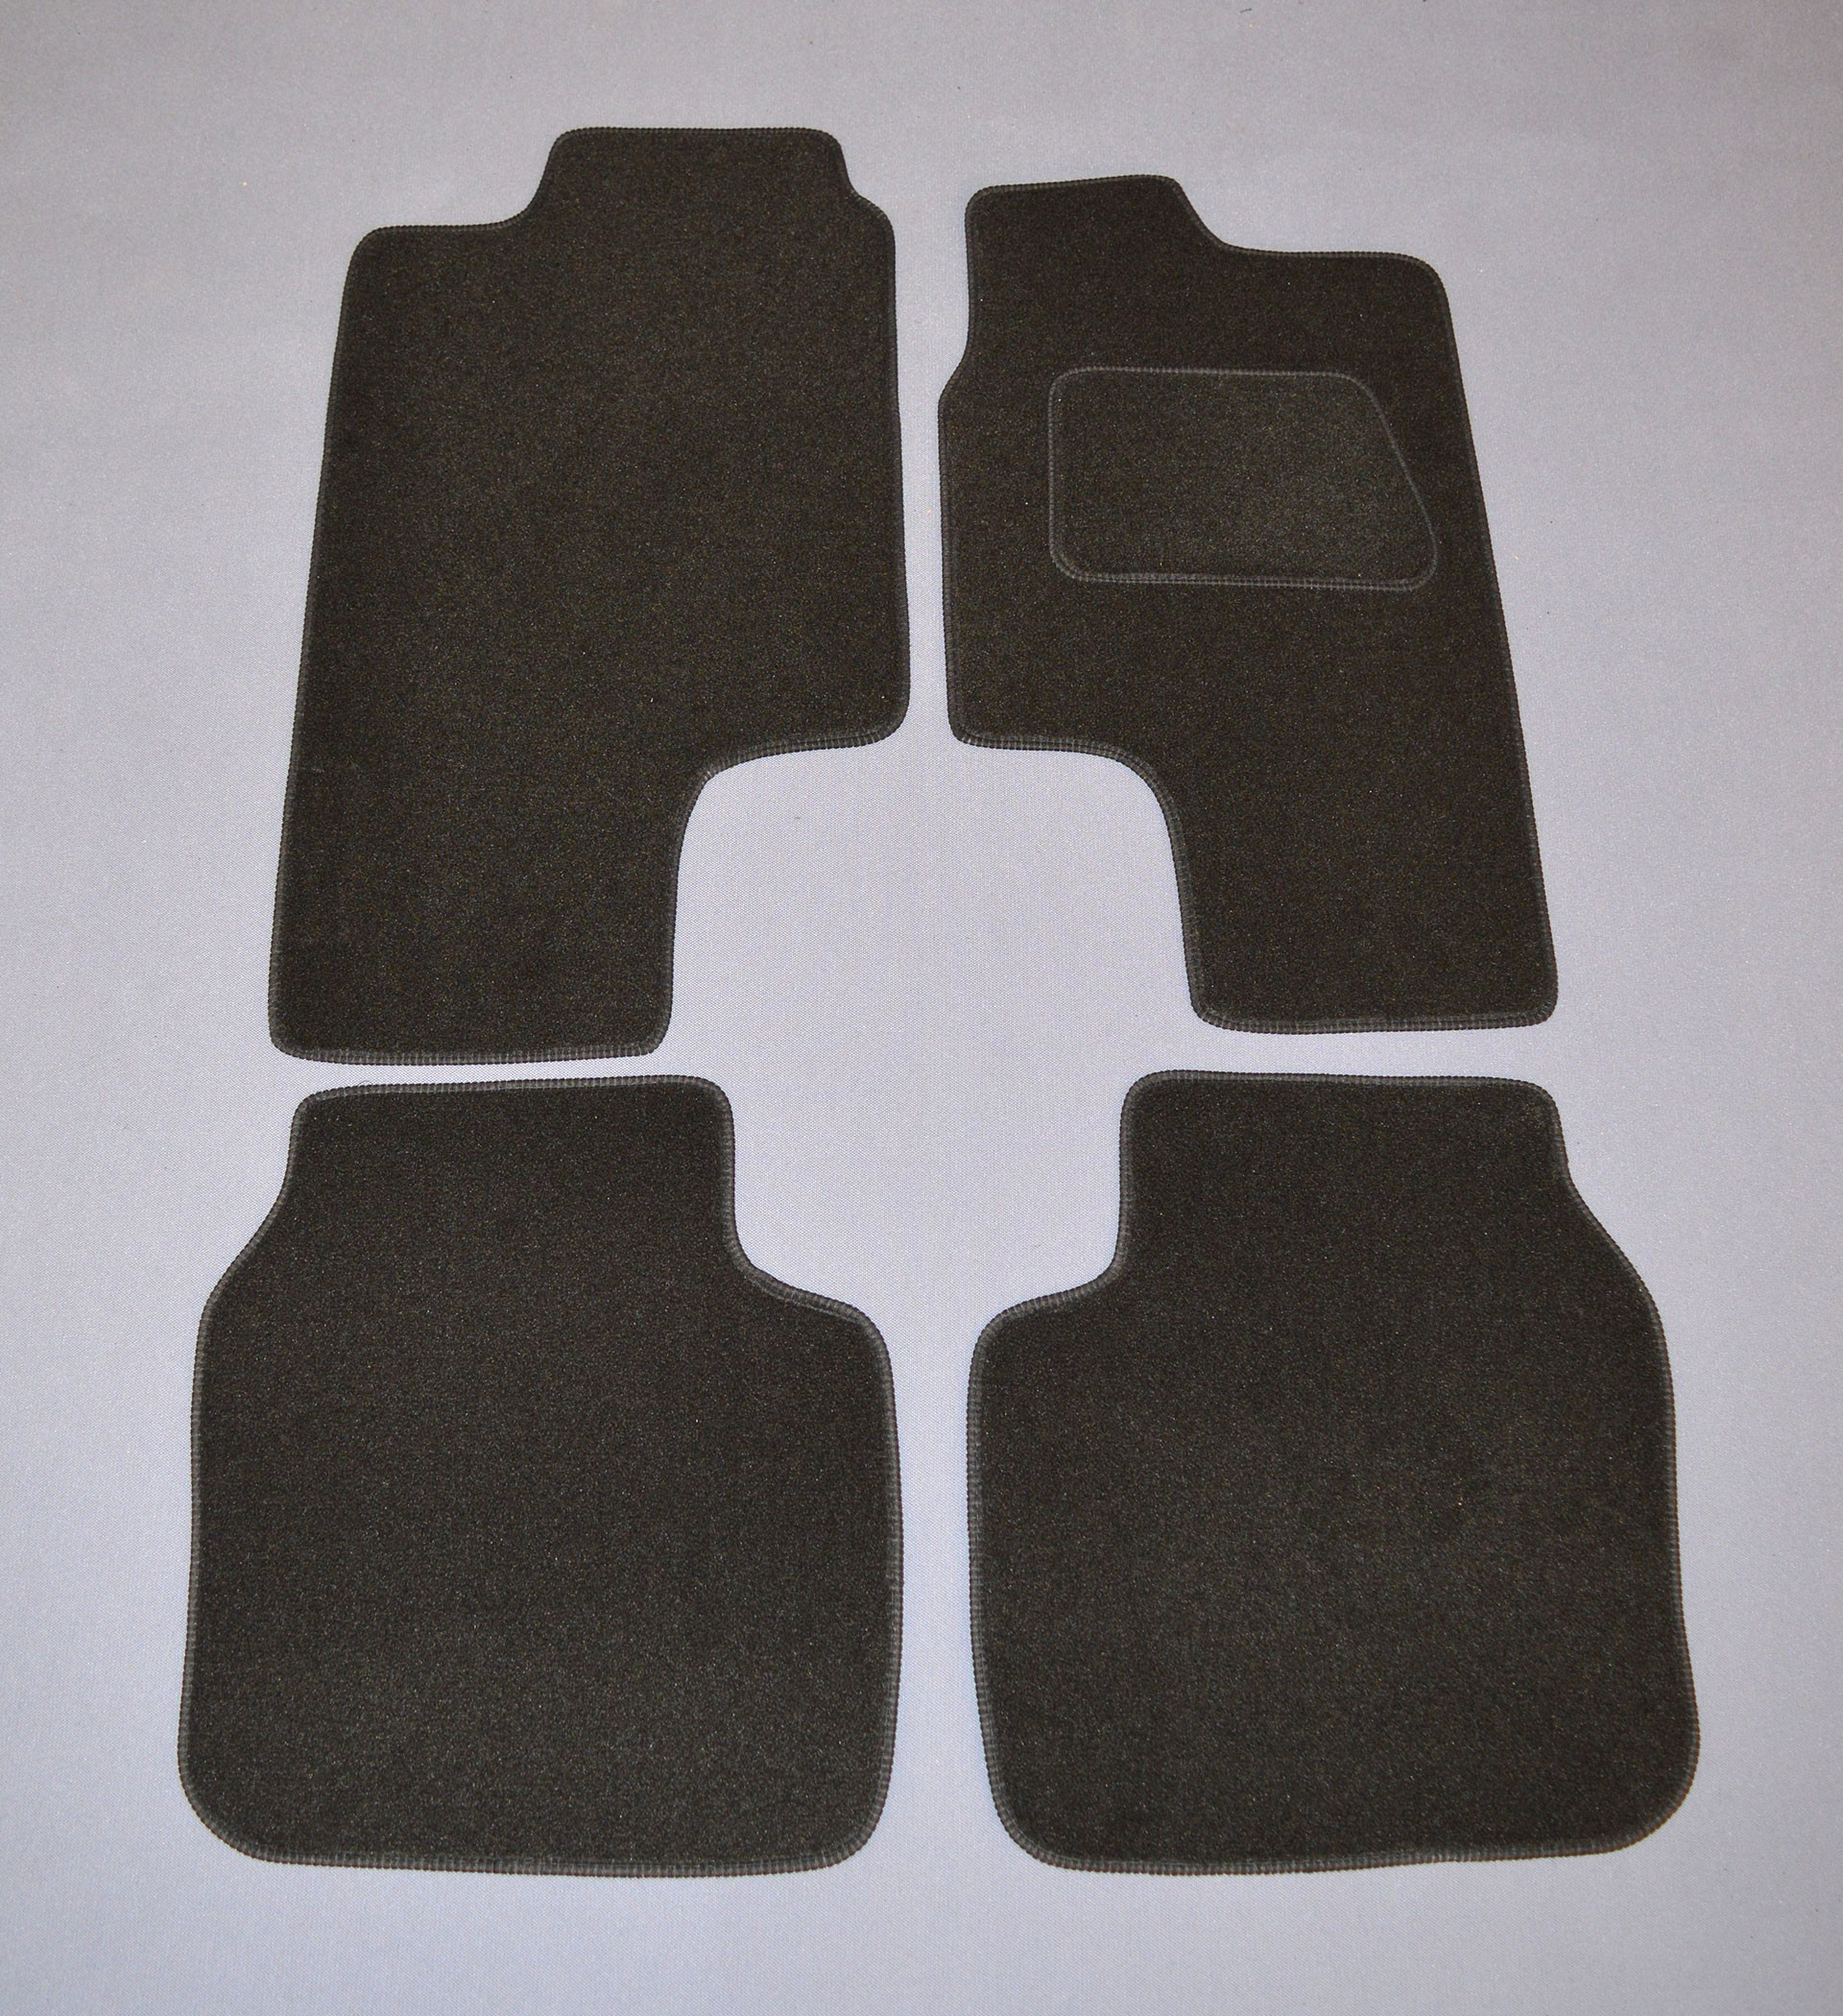 Toyota Corolla AE86 RWD Twin Cam Tailored Car Floor Mats 1983 - 1987